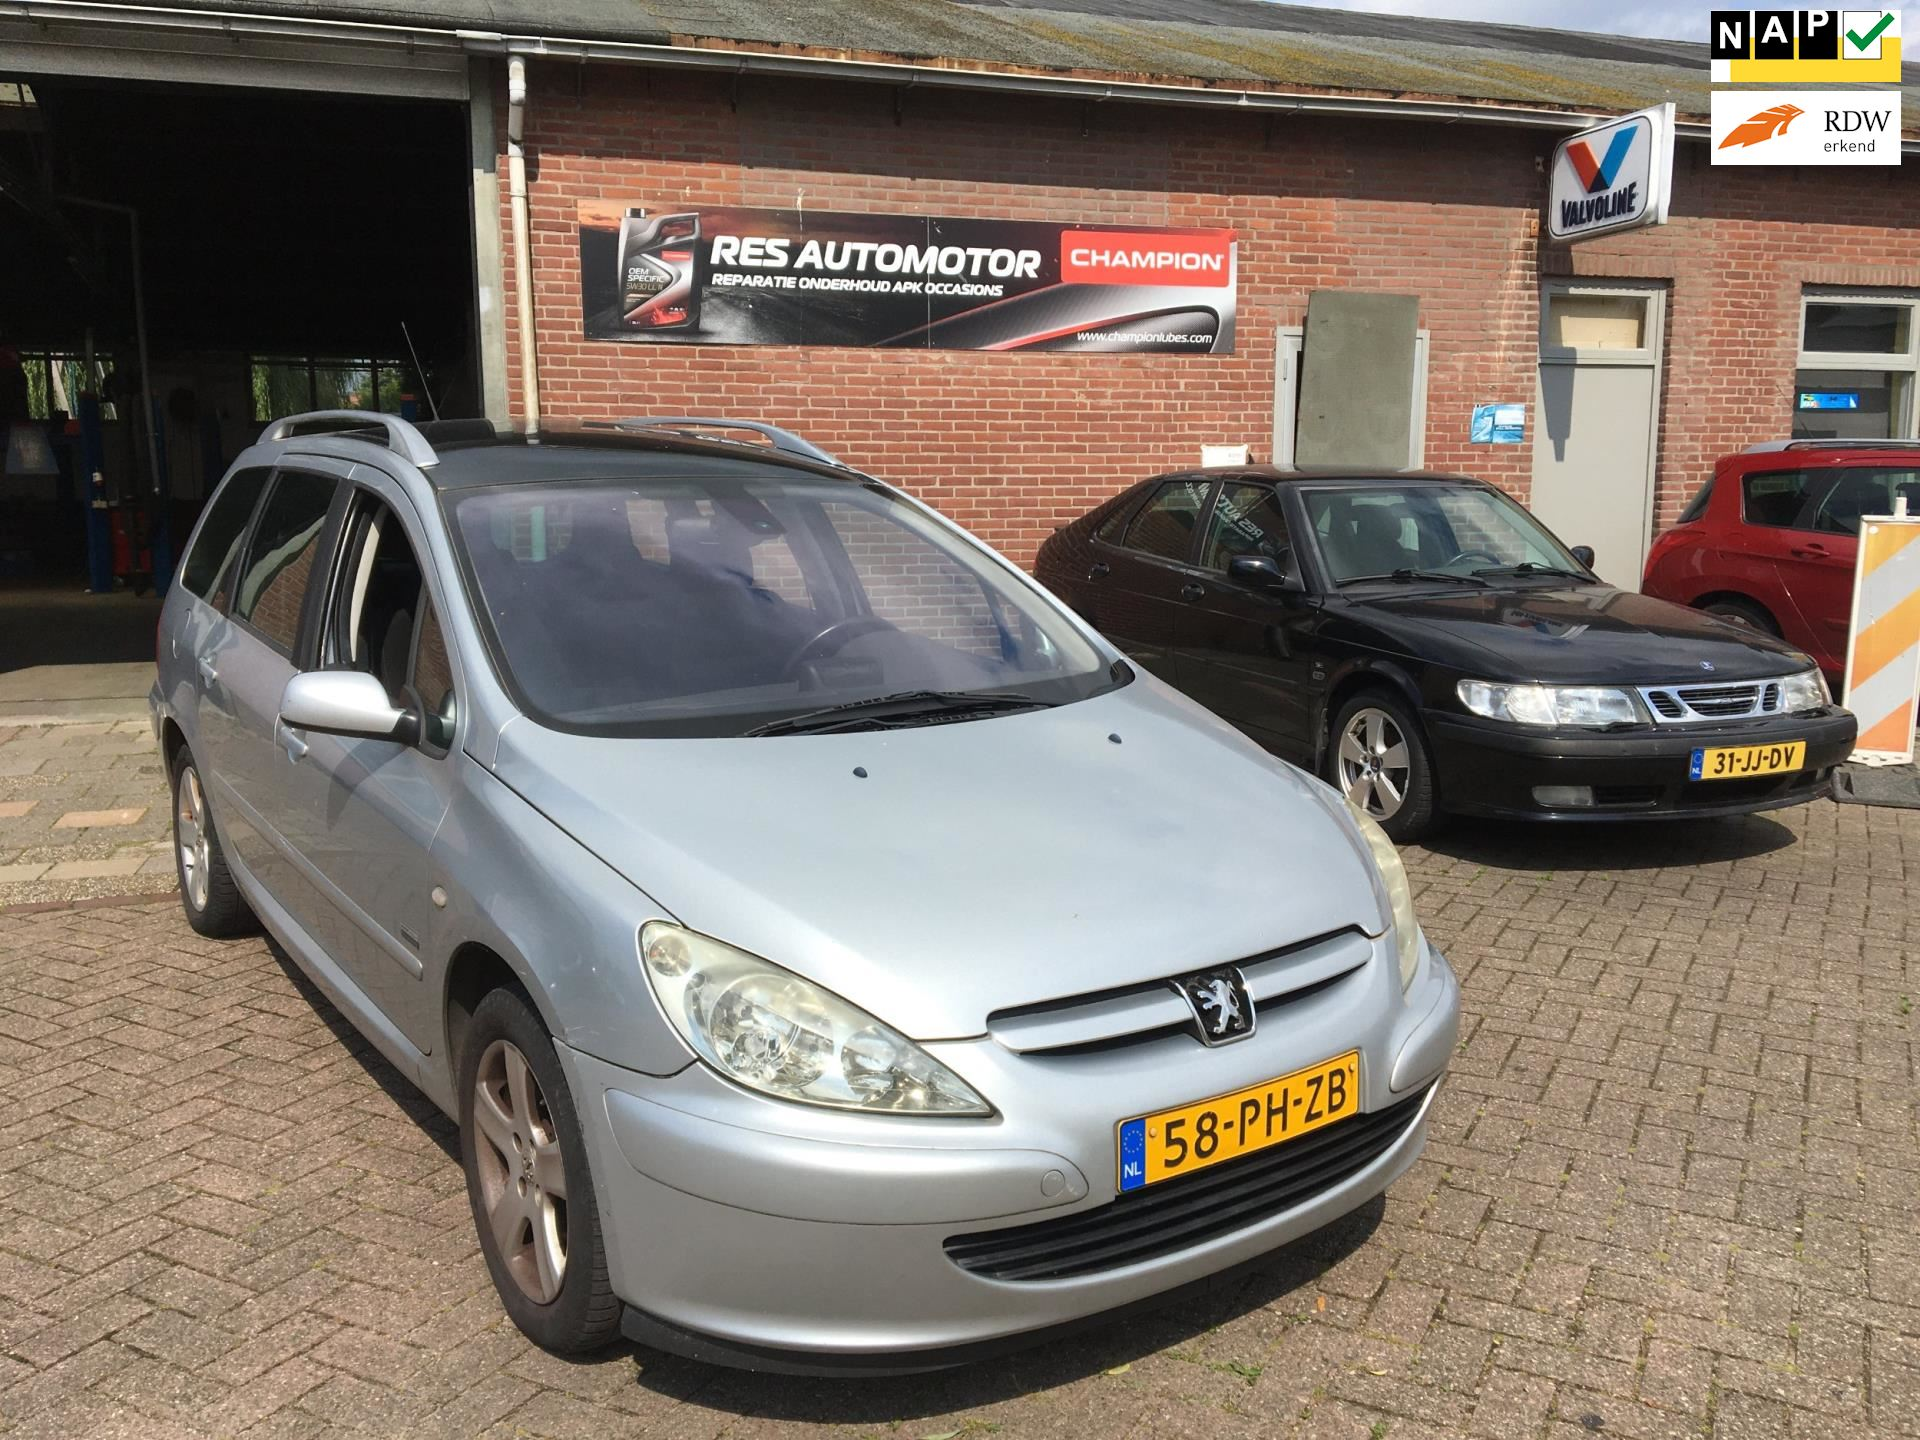 Peugeot 307 SW occasion - RESAUTOMOTOR